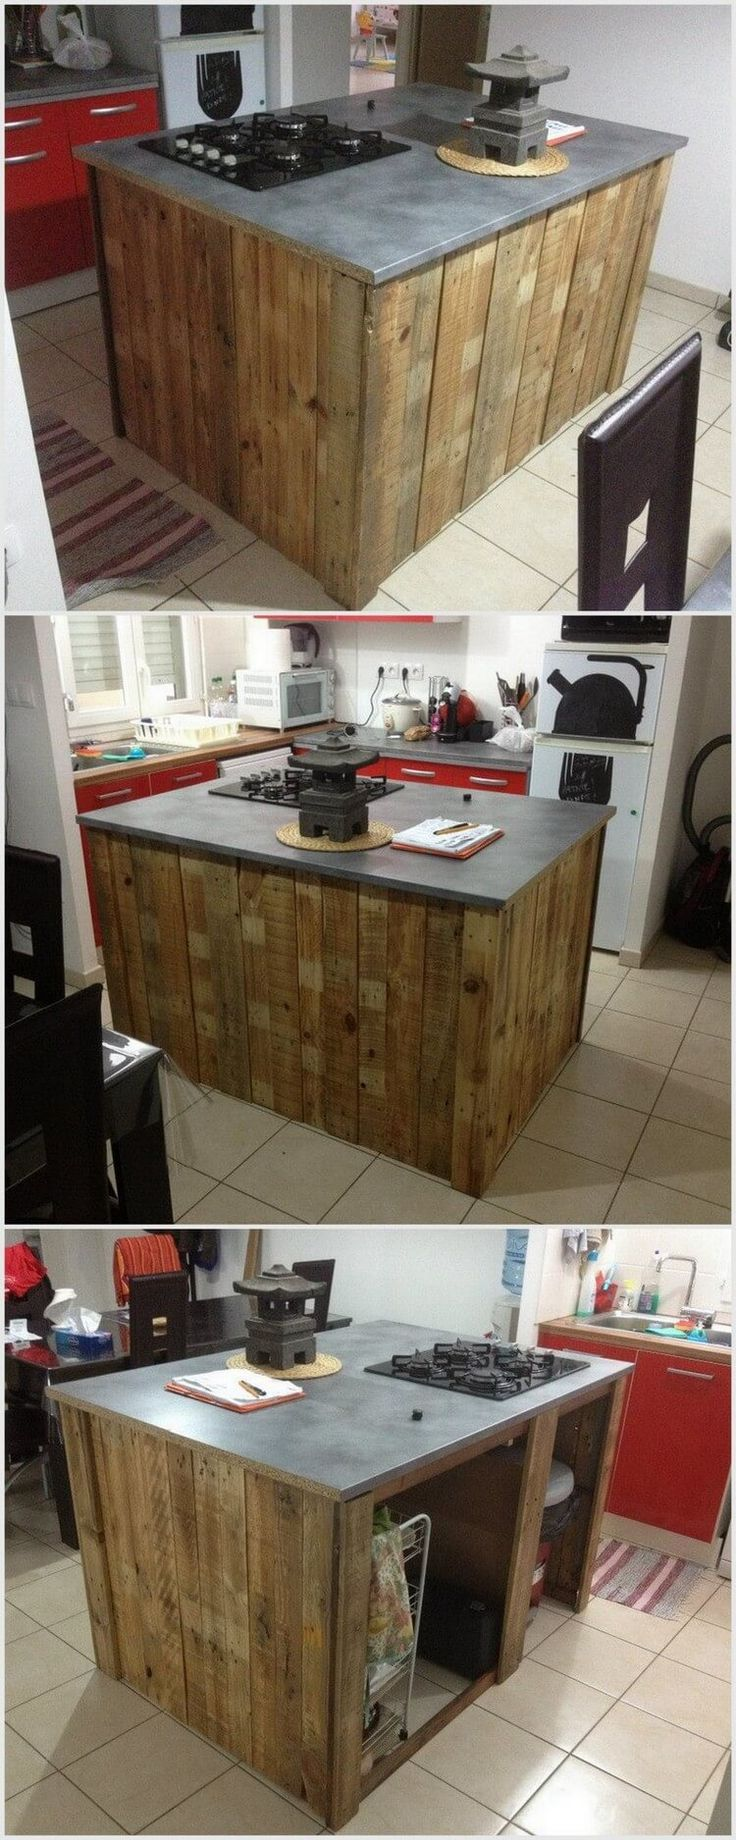 Mud kitchen upcycled pallet mud kitchen pallet kitchen counter with - Astonishing Projects For Wood Pallet Recycling Pallet Kitchen